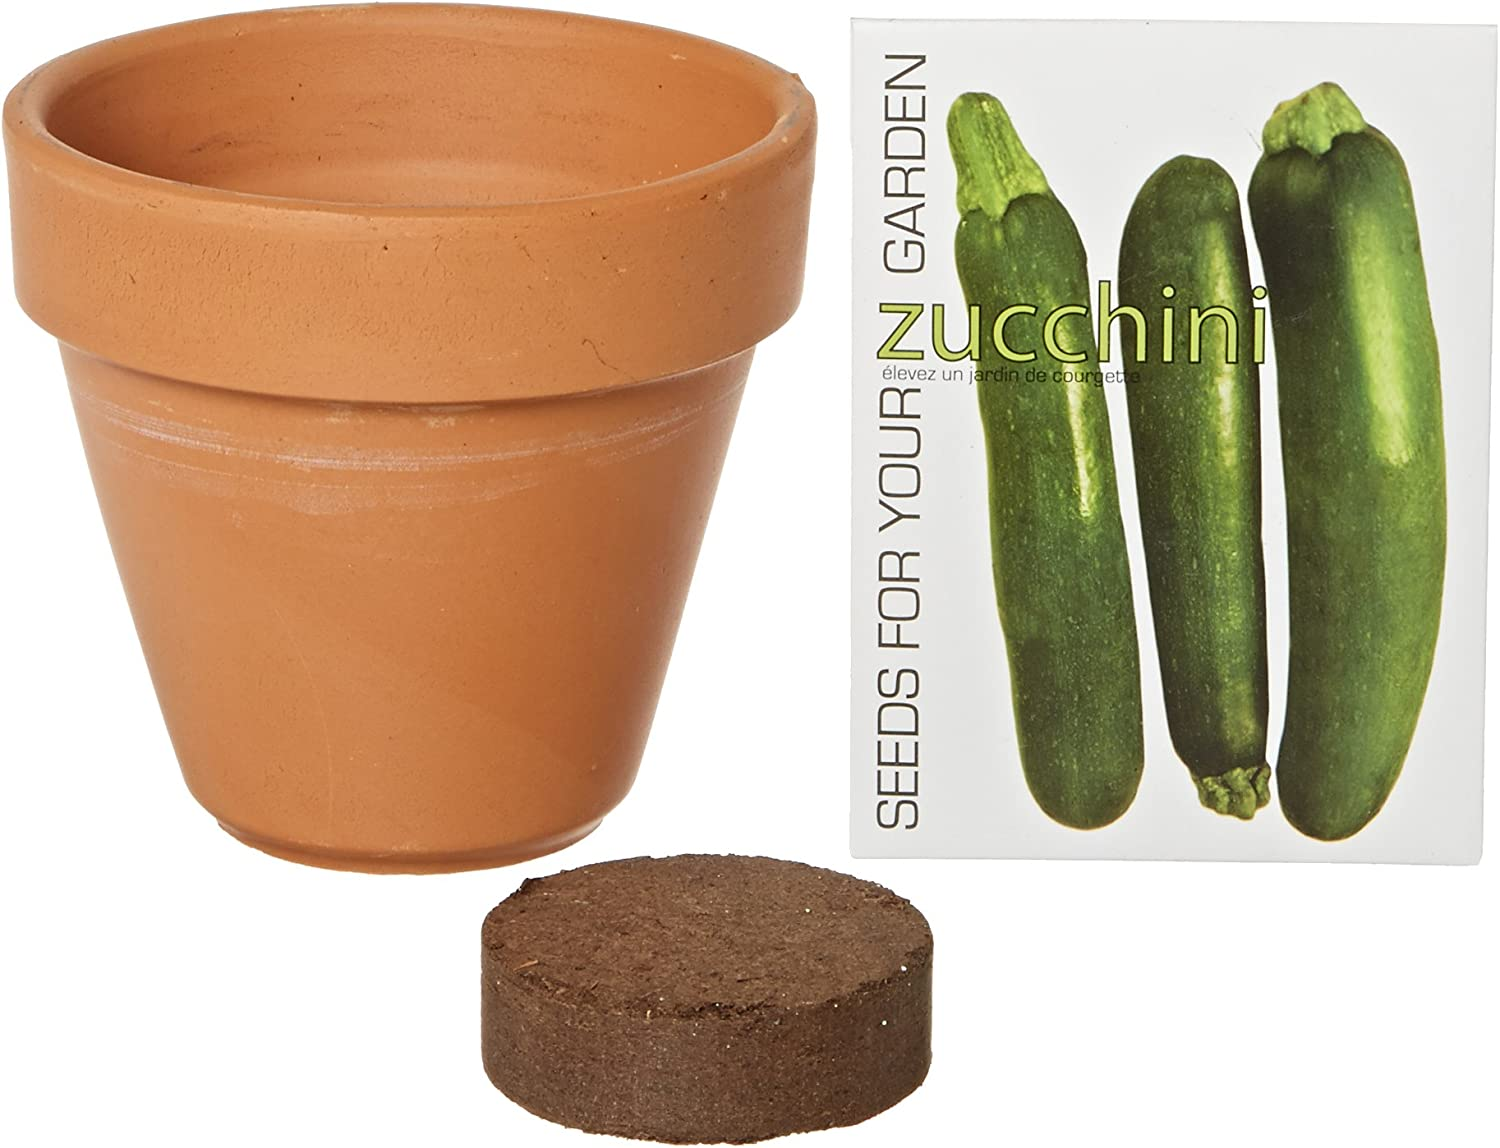 S.F. Imports GB-ZUCCHINI/MD Grow Your Own Medium Vegetable Kit, Zucchini